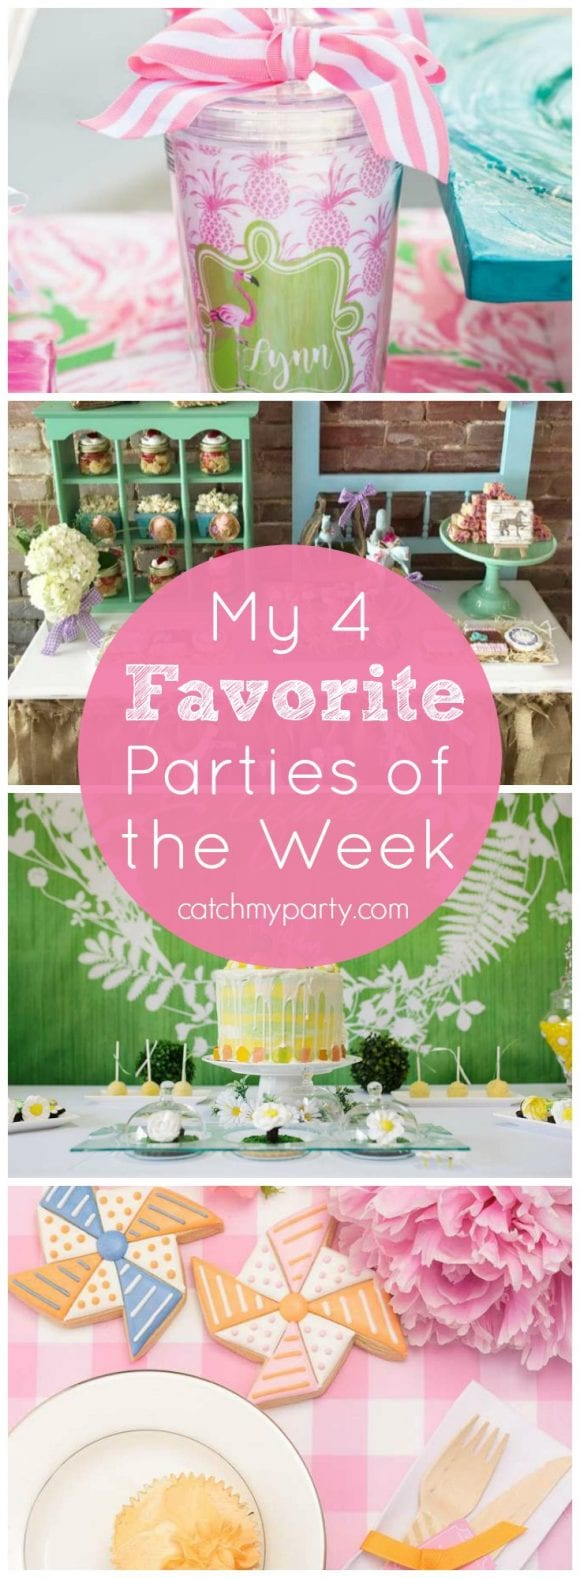 My favorite parties are a Lilly Pulitzer bridal shower, a cowgirl summer party, a white daisy party, and a country fair pinwheel party